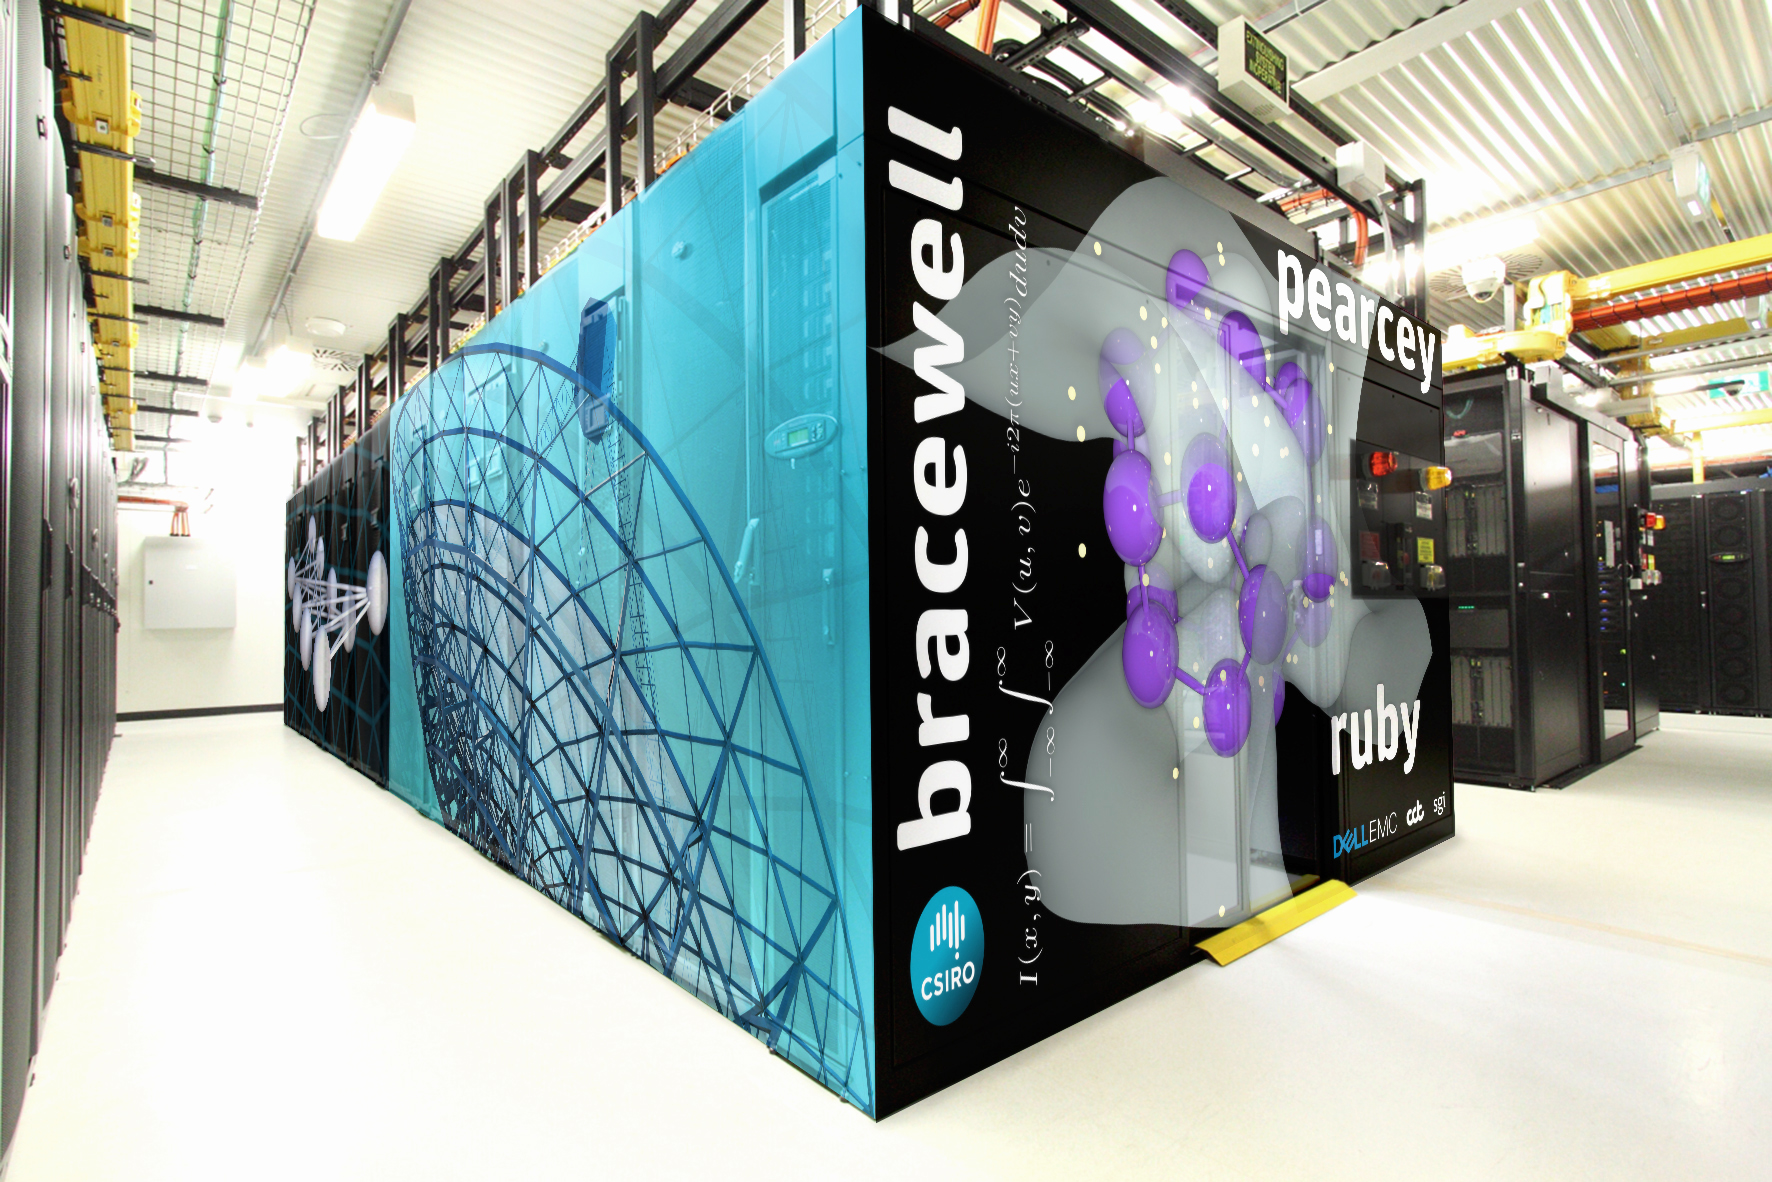 Super computer with artist's impression of banners on the outside frame including the words Bracewell, Pawsey and the CSIRO logo.